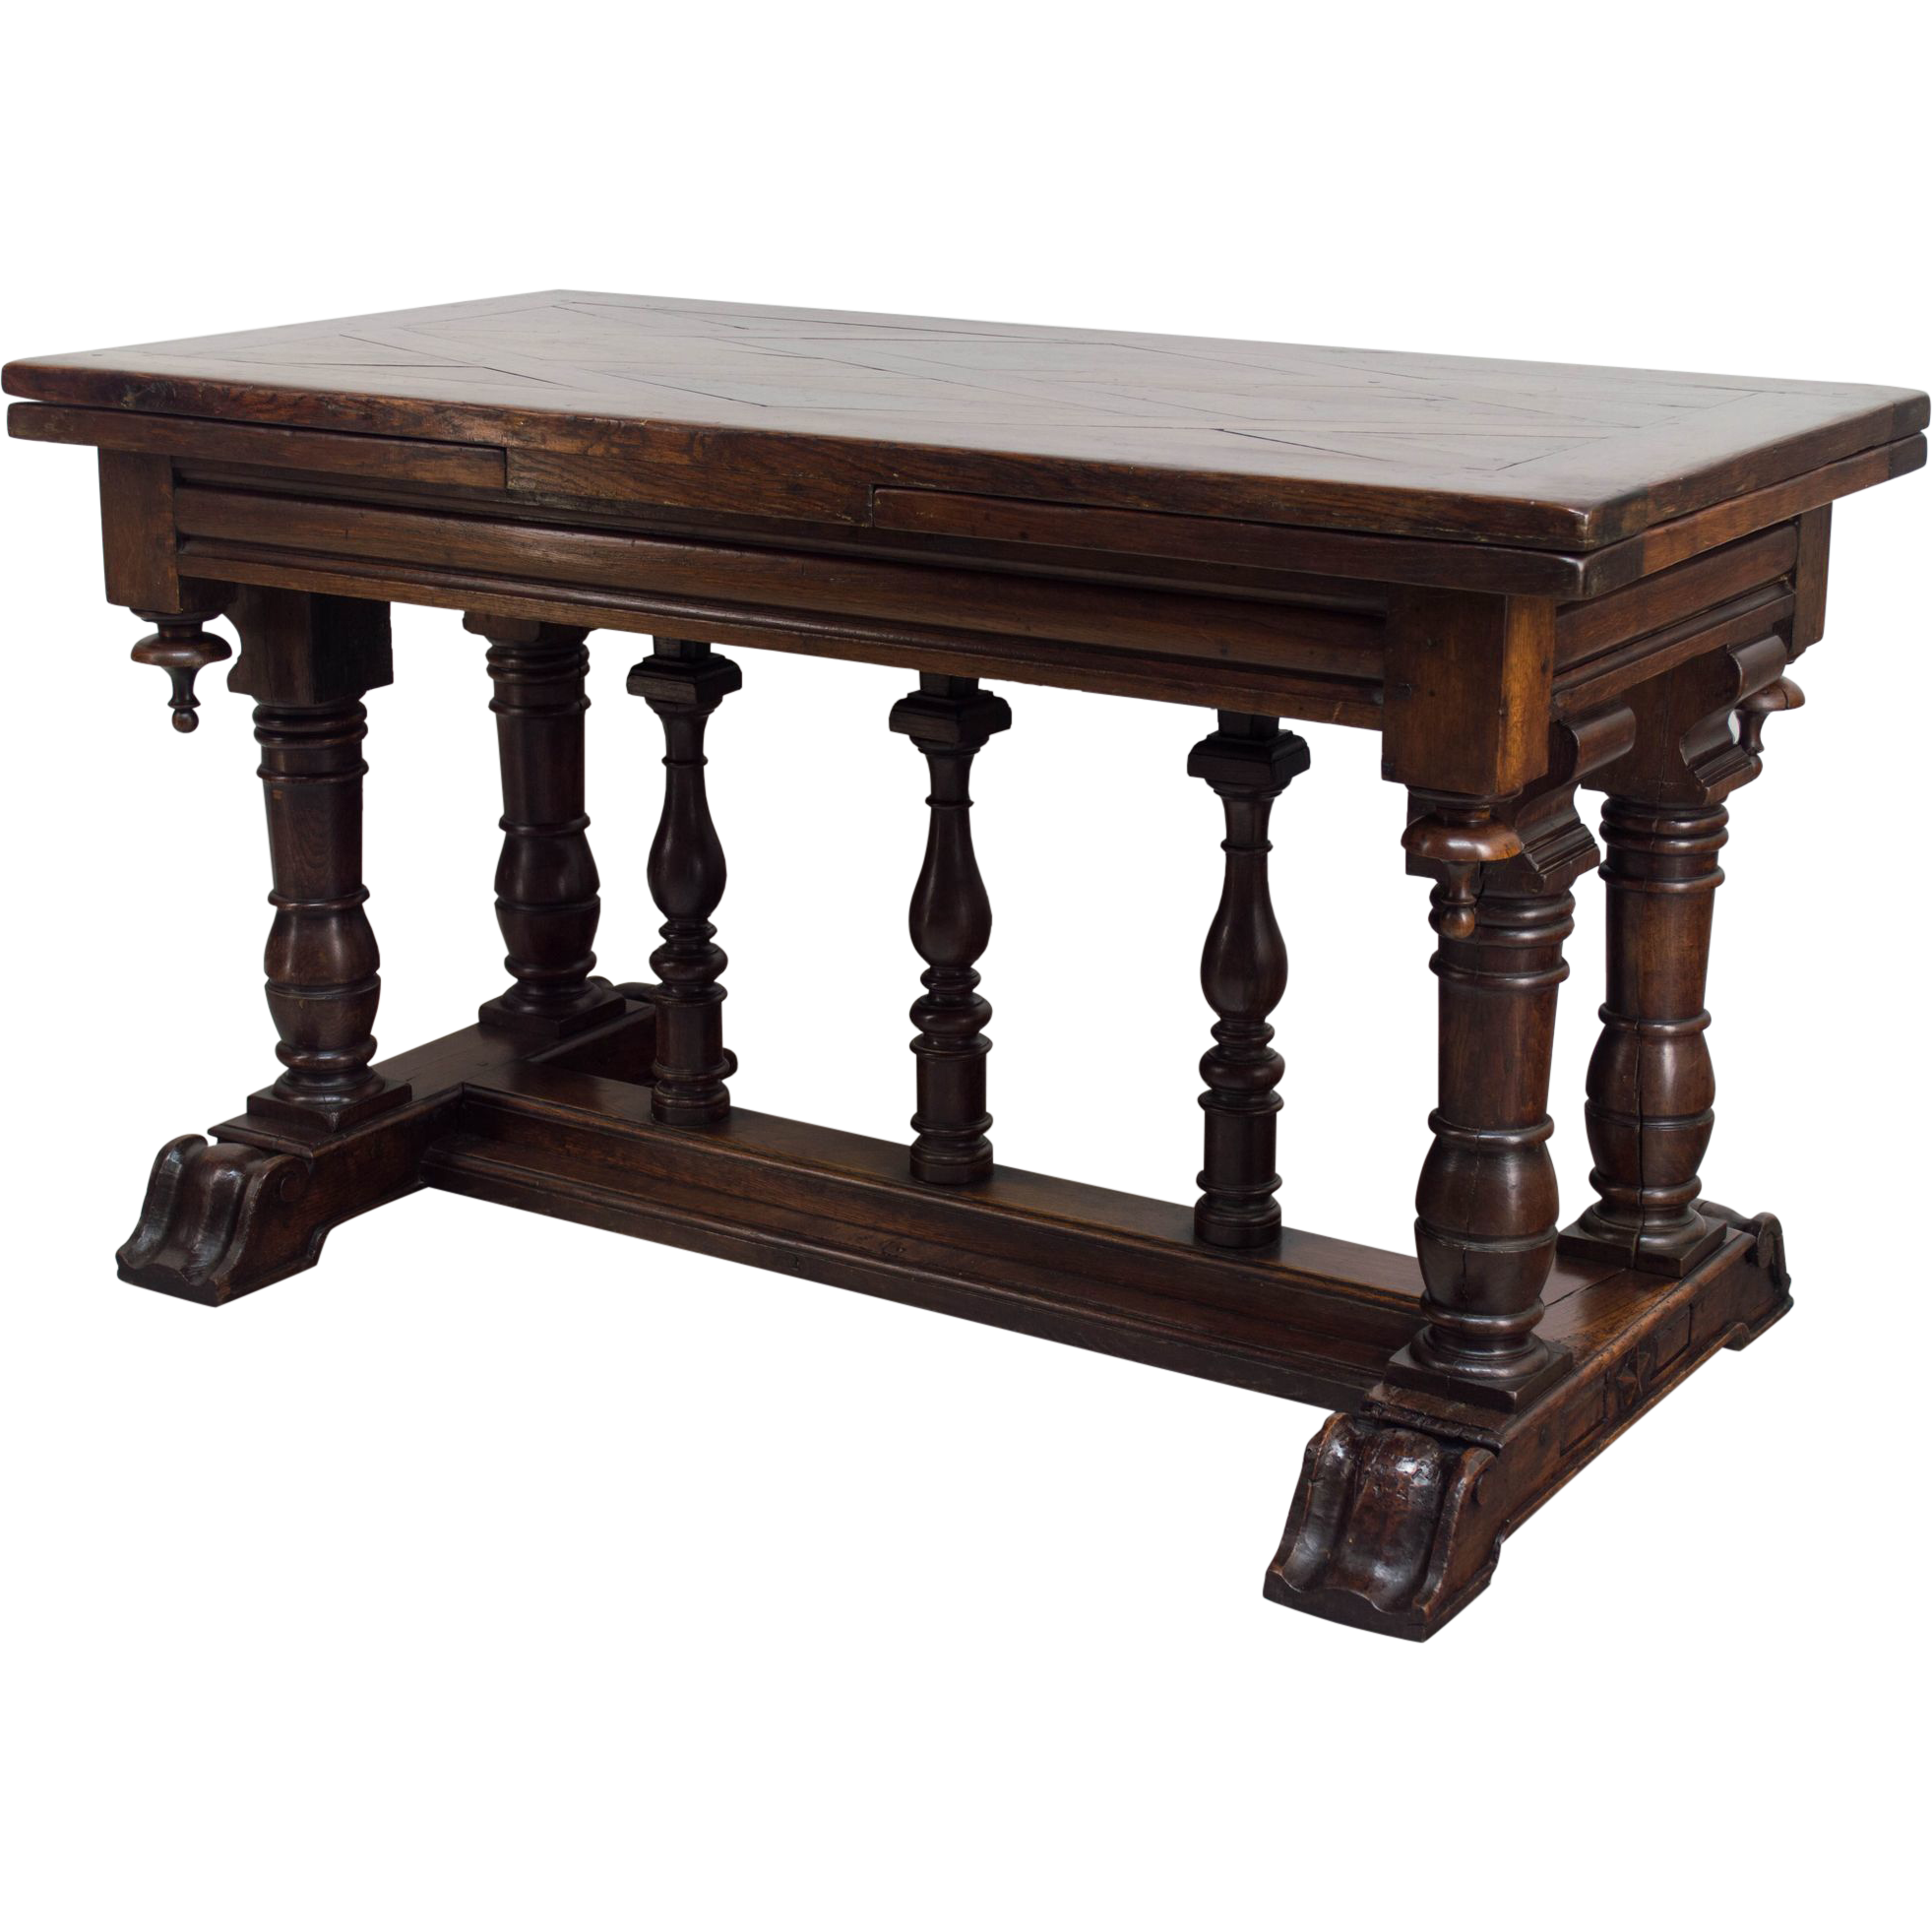 French Renaissance Style Refractory Table